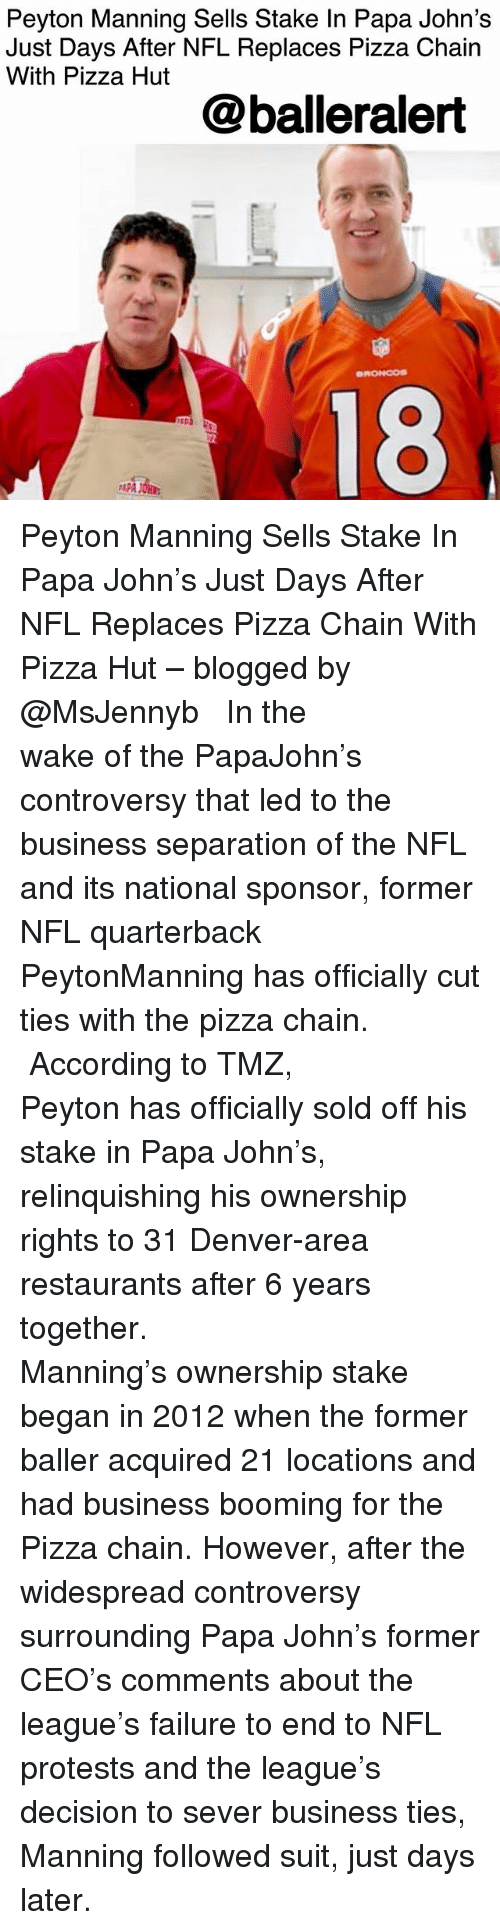 Memes, Nfl, and Peyton Manning: Peyton Manning Sells Stake In Papa John's  Just Days After NFL Replaces Pizza Chain  With Pizza Hut  @balleralert  18  PAPA JOH Peyton Manning Sells Stake In Papa John's Just Days After NFL Replaces Pizza Chain With Pizza Hut – blogged by @MsJennyb ⠀⠀⠀⠀⠀⠀⠀⠀⠀ ⠀⠀⠀⠀⠀⠀⠀⠀⠀ In the wake of the PapaJohn's controversy that led to the business separation of the NFL and its national sponsor, former NFL quarterback PeytonManning has officially cut ties with the pizza chain. ⠀⠀⠀⠀⠀⠀⠀⠀⠀ ⠀⠀⠀⠀⠀⠀⠀⠀⠀ According to TMZ, Peyton has officially sold off his stake in Papa John's, relinquishing his ownership rights to 31 Denver-area restaurants after 6 years together. ⠀⠀⠀⠀⠀⠀⠀⠀⠀ ⠀⠀⠀⠀⠀⠀⠀⠀⠀ Manning's ownership stake began in 2012 when the former baller acquired 21 locations and had business booming for the Pizza chain. However, after the widespread controversy surrounding Papa John's former CEO's comments about the league's failure to end to NFL protests and the league's decision to sever business ties, Manning followed suit, just days later.